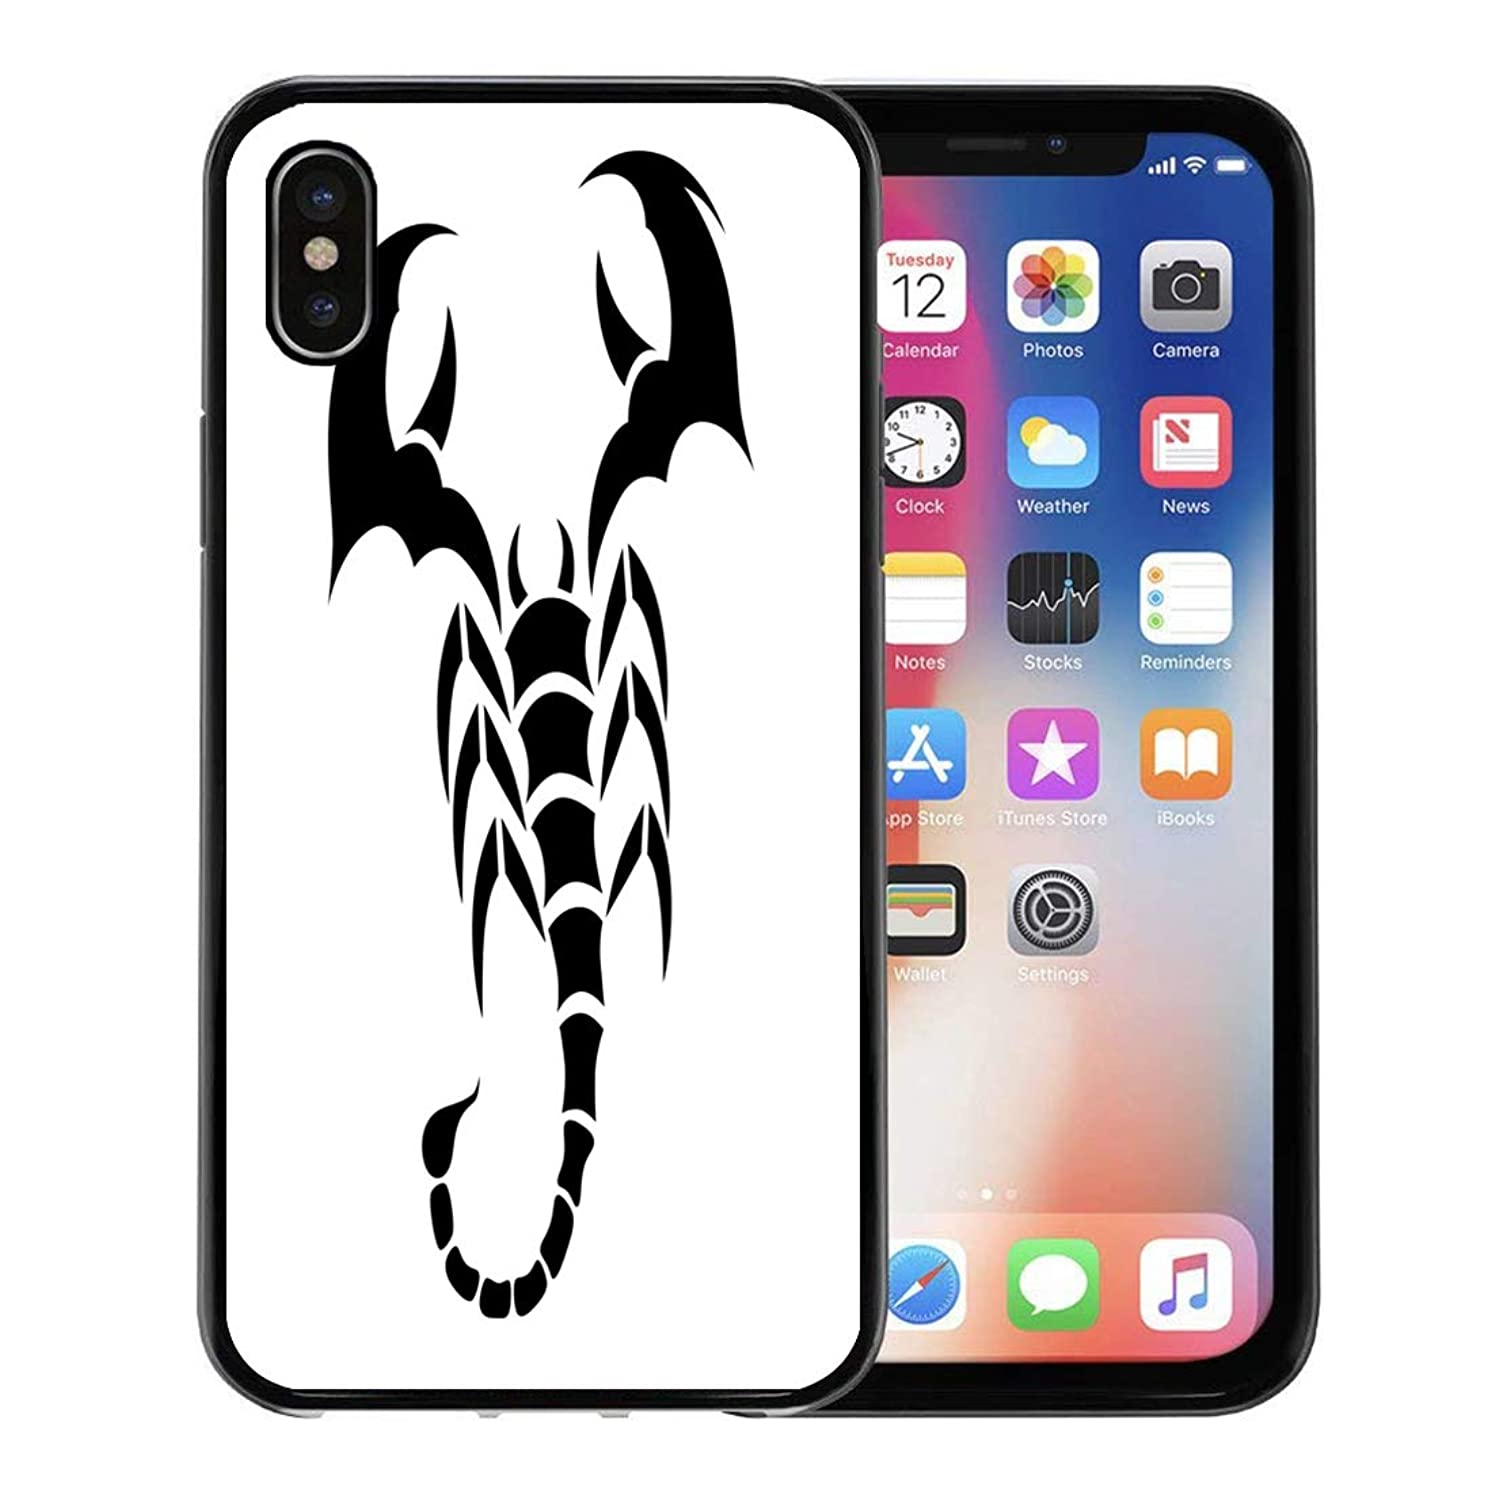 Semtomn Phone Case for Apple iPhone Xs case,Abstract Scorpion Tattoo Tribal Desgin Black on Animal Arm Back Danger for iPhone X Case,Rubber Border Protective Case,Black